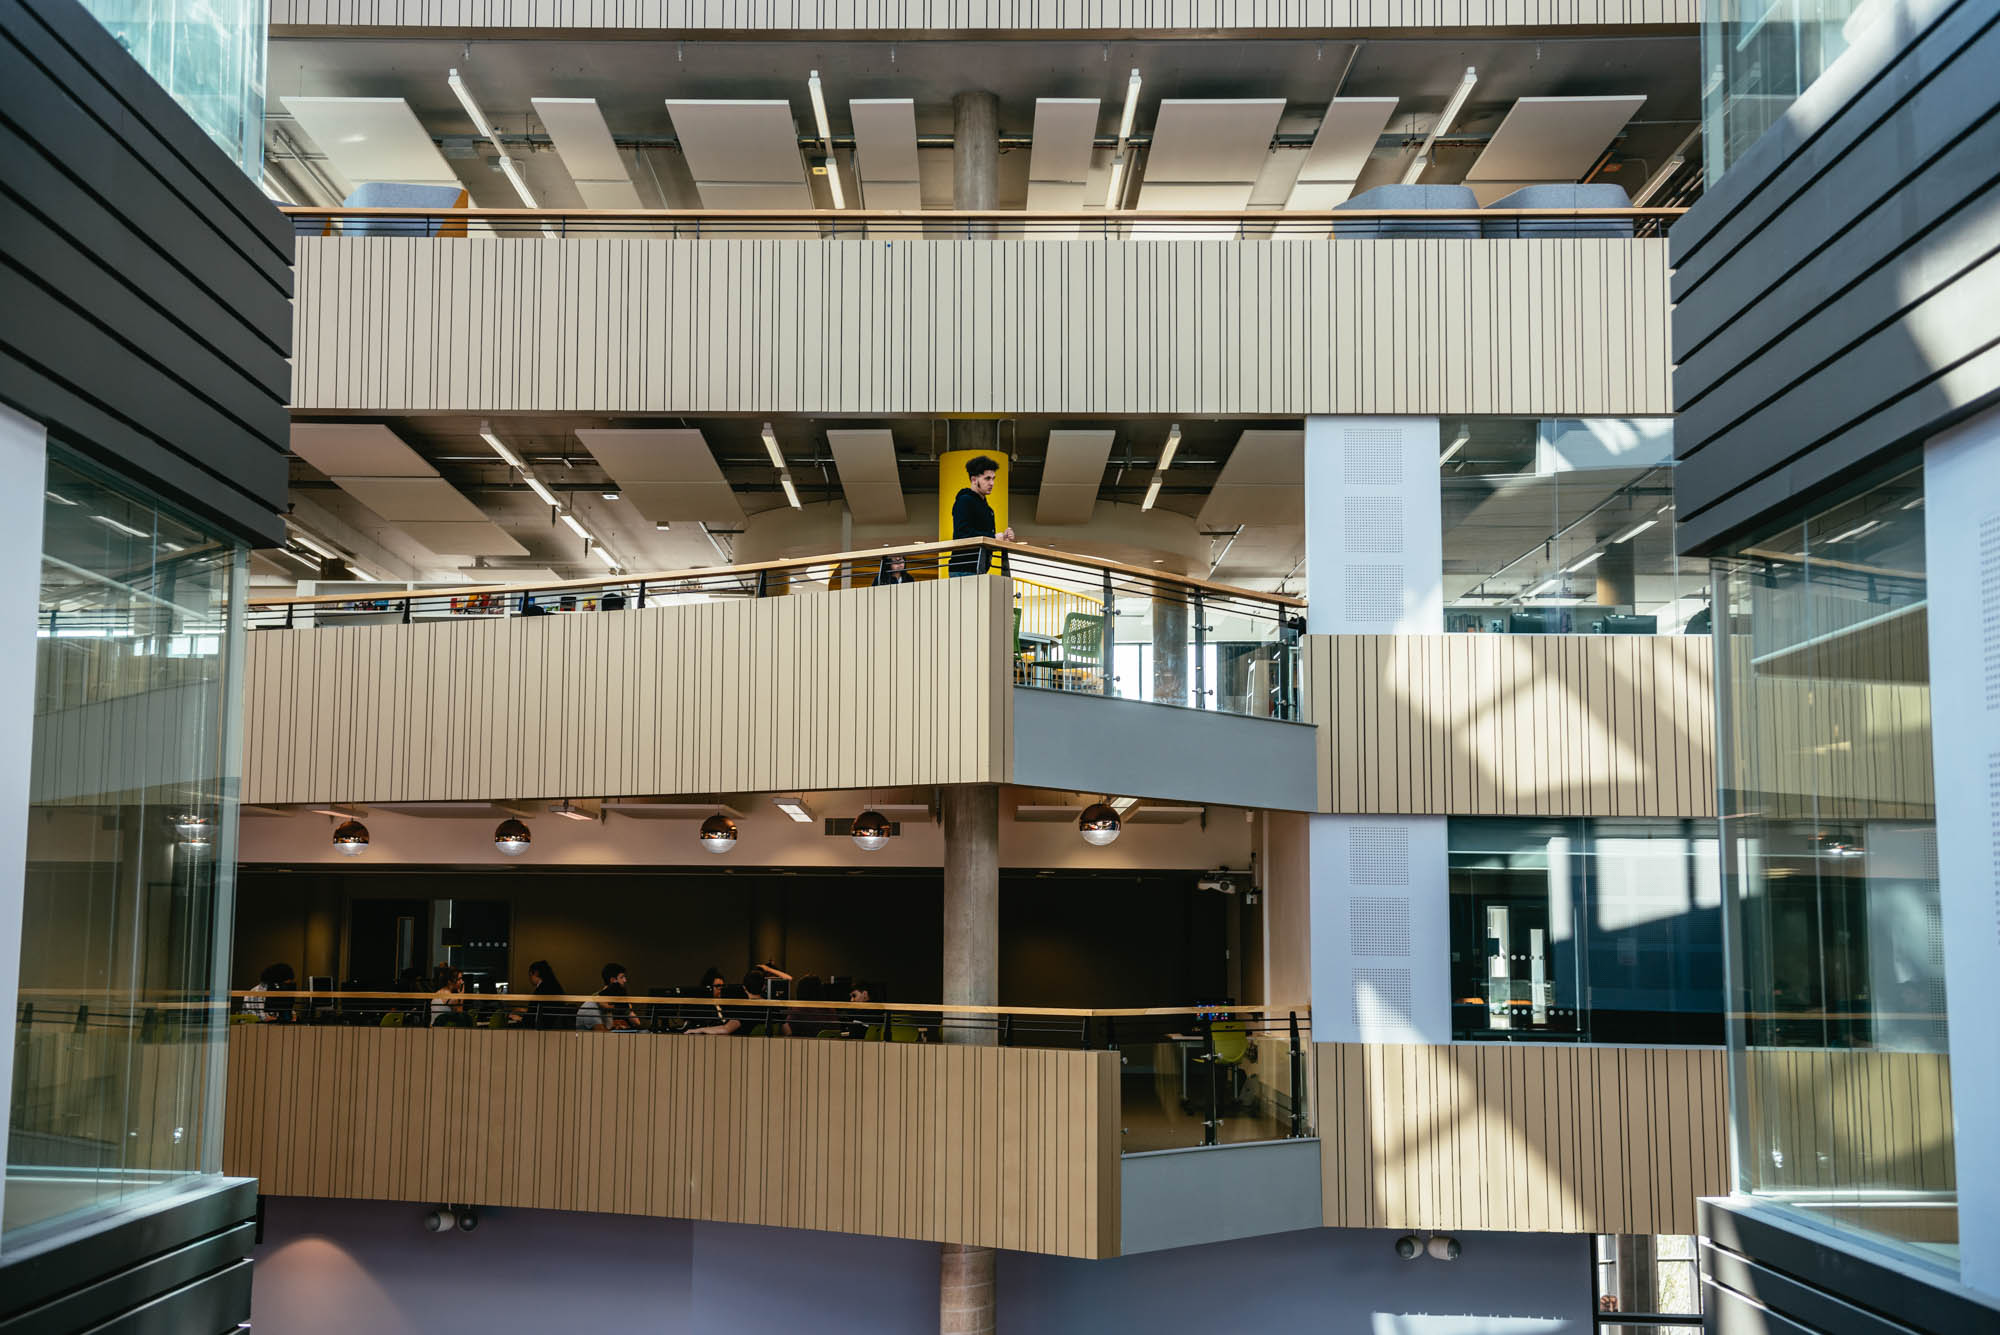 A photo of the interior architecture of a college for further education in cardiff wales